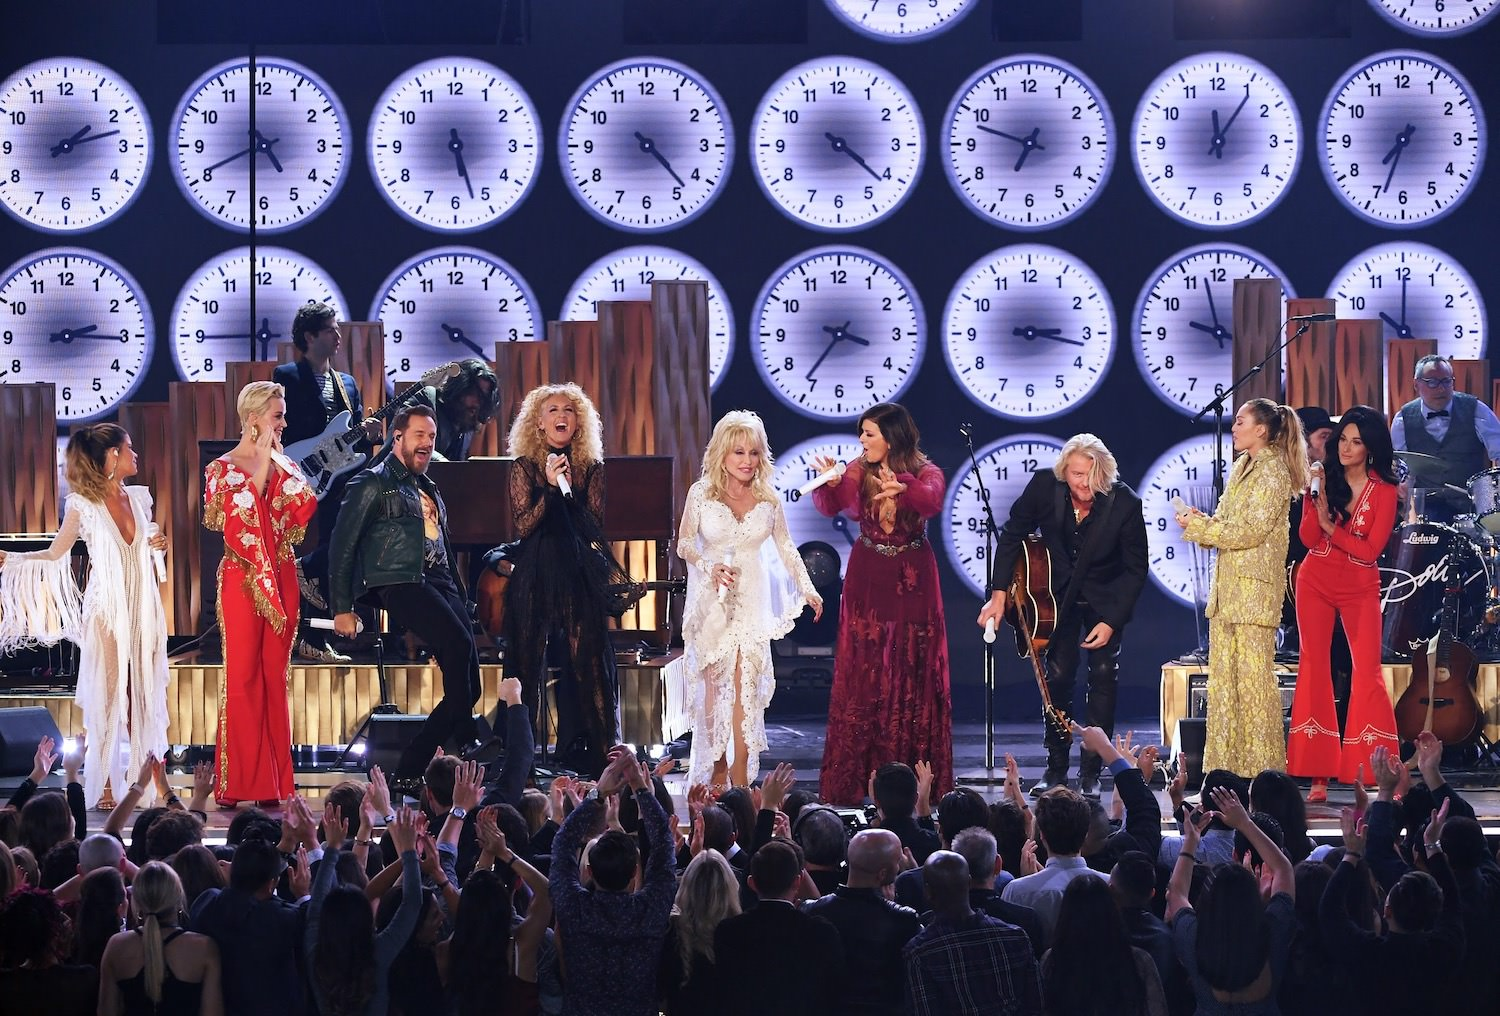 61St GRAMMYS - DOLLY PARTON / LITTLE BIG TOWN / MILEY CYRUS / KATY PERRY / KACEY MUSGRAVES / MAREN MORRIS